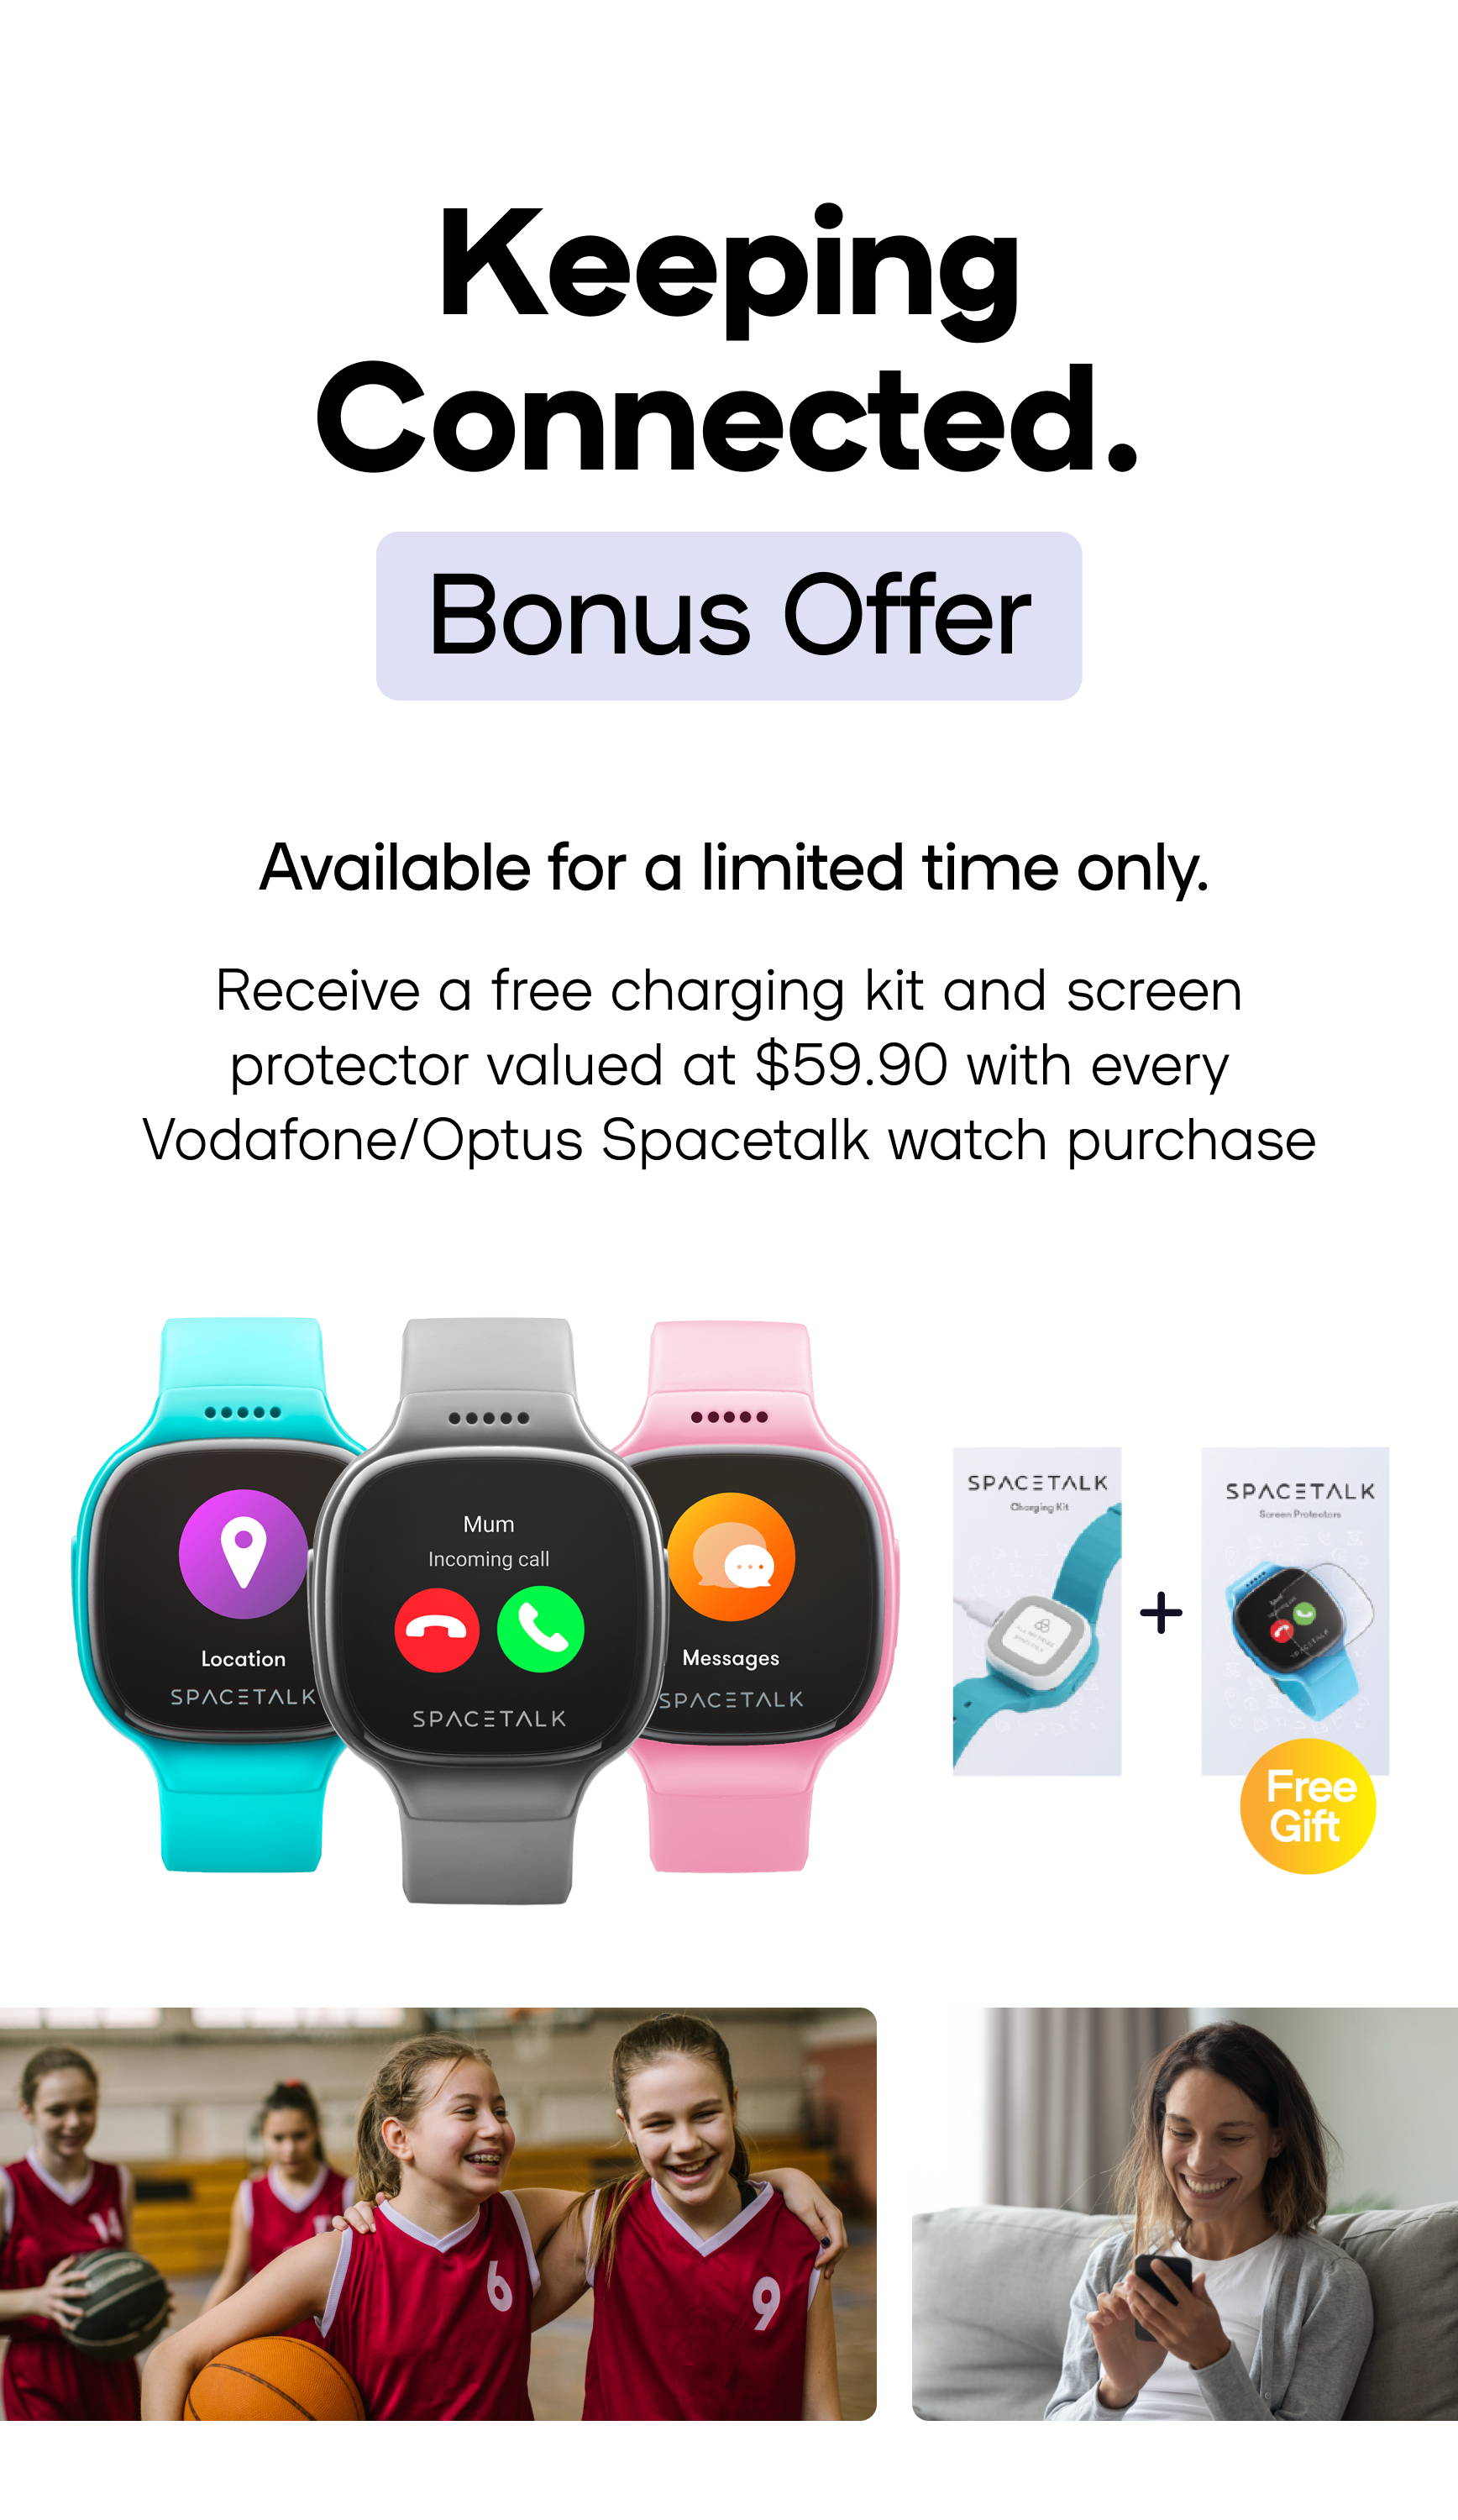 Banner showcasing Spacetalk Kids watch along with free gift of chargin kit and screen protector. Alongside images of smiling kids playing sports and a mum using the Spacetalk app on her phone.